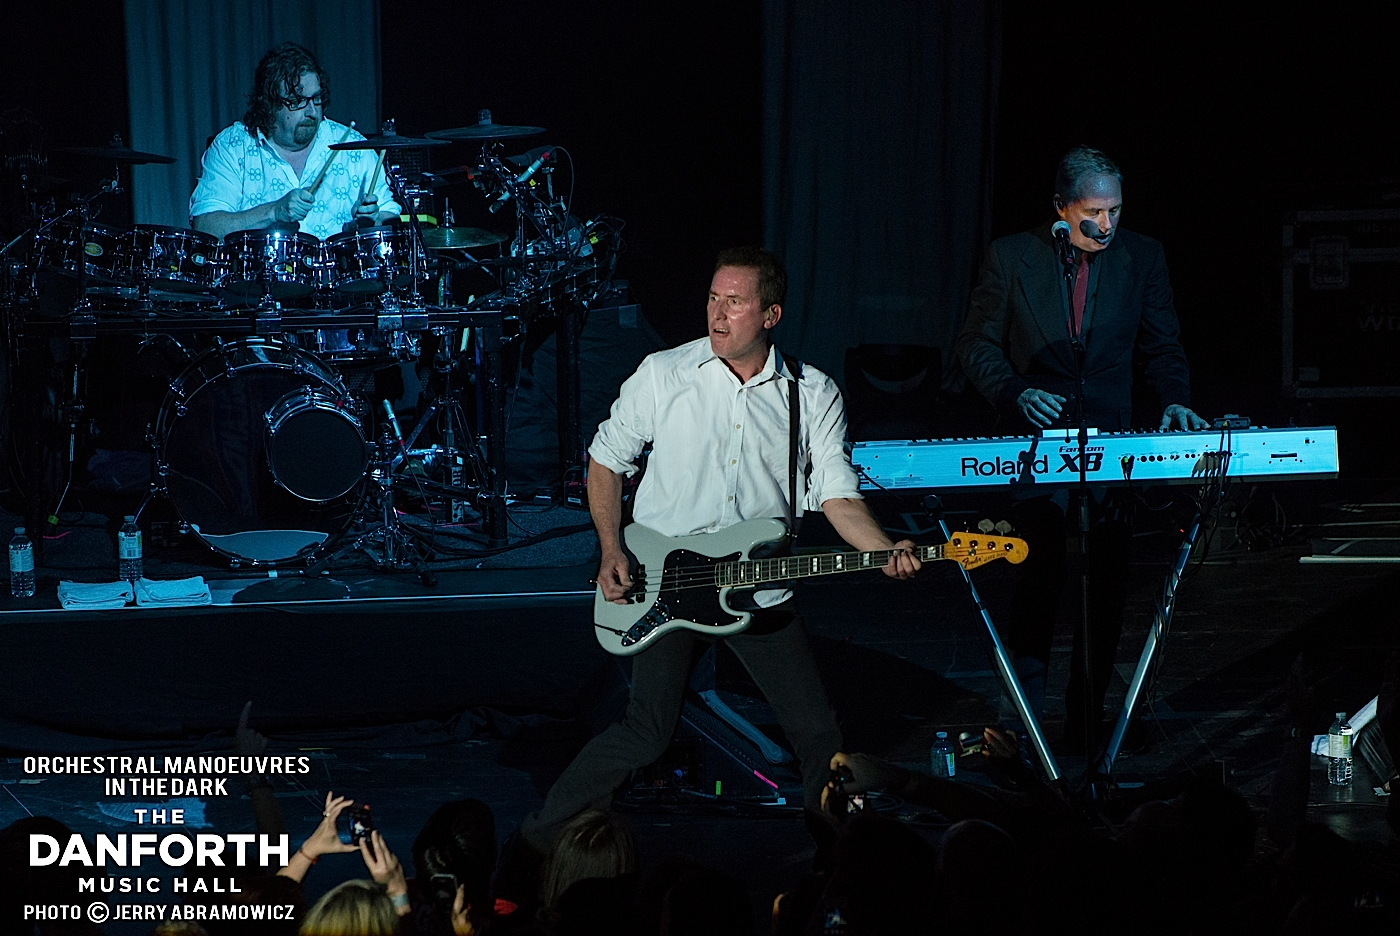 20130711 Orchestral Manoeuvres in the Dark at The Danforth Music Hall 0381